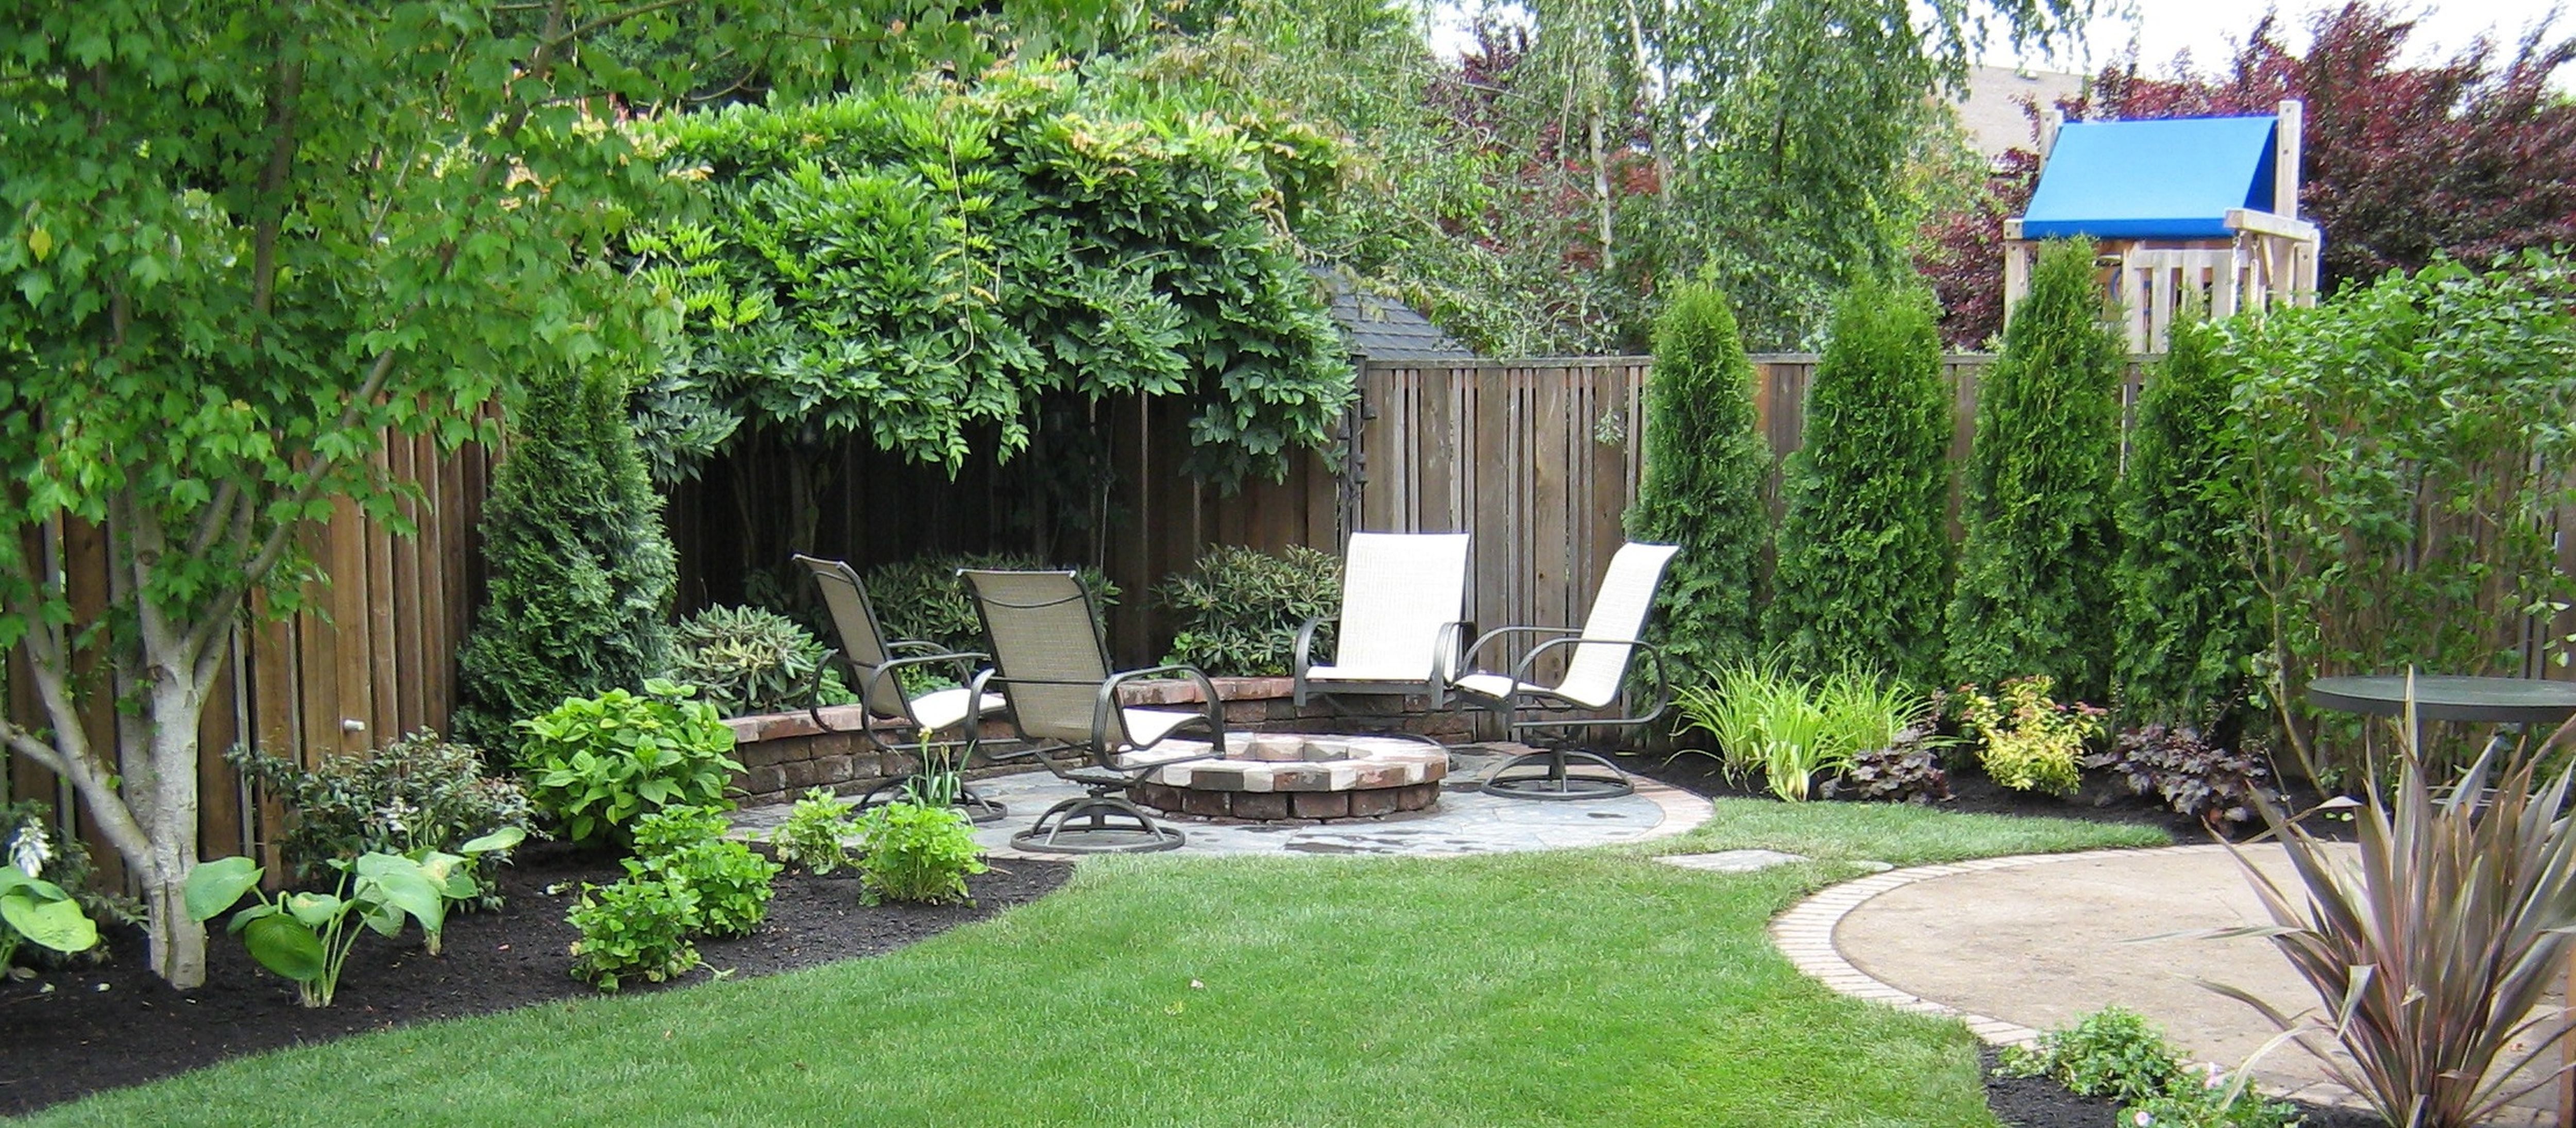 simple landscaping ideas for a small space small yard on beautiful backyard garden design ideas and remodel create your extraordinary garden id=70280